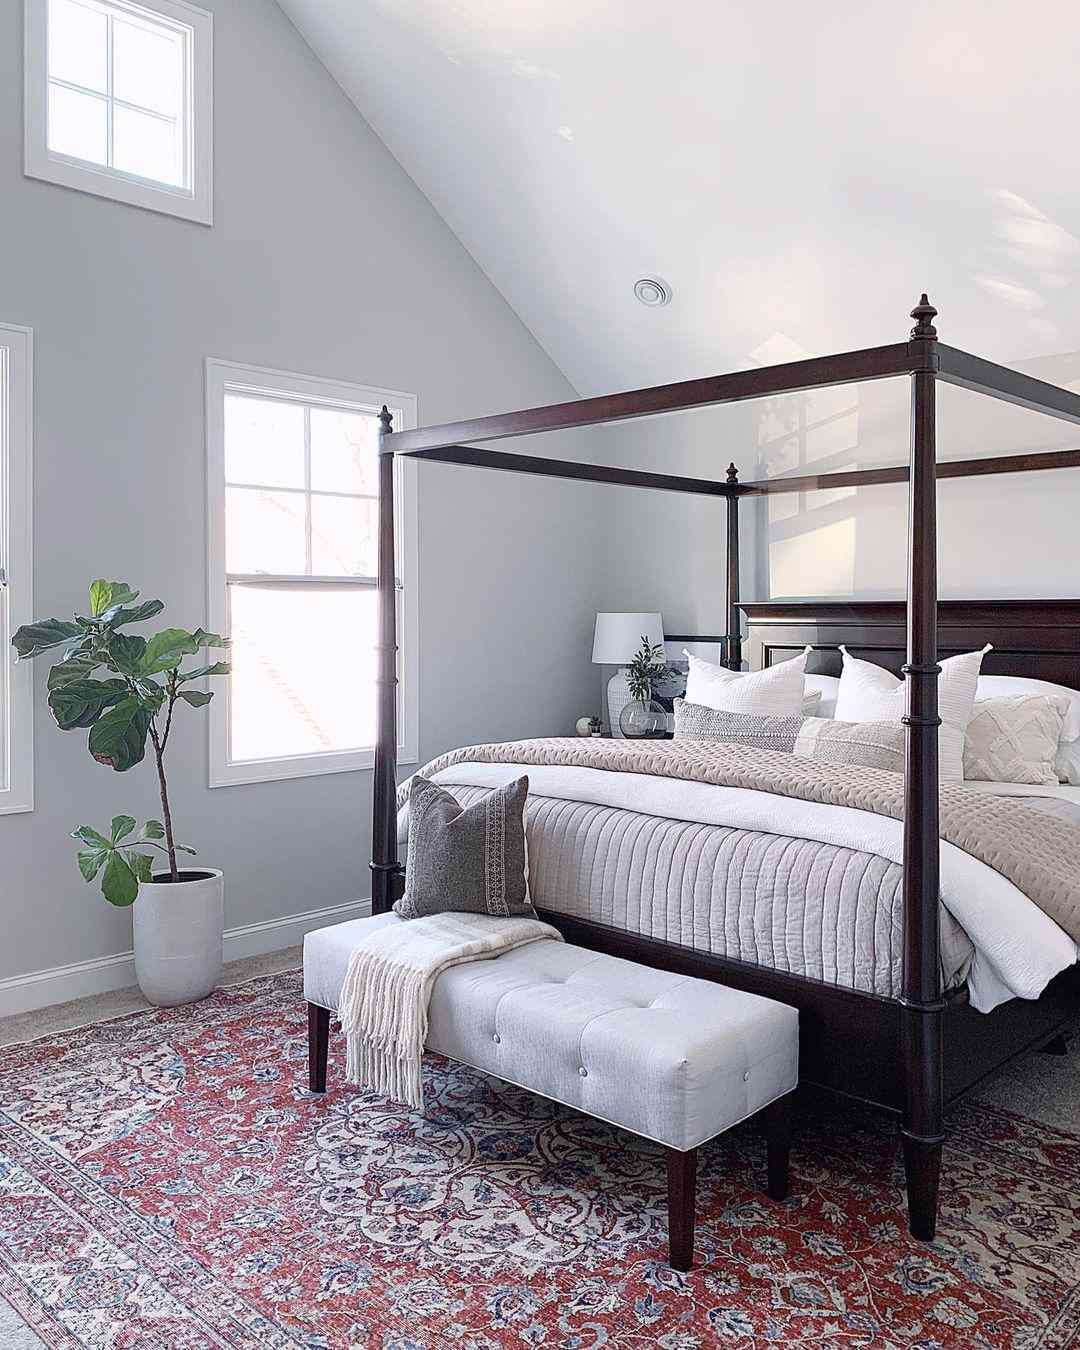 Bedroom with many windows and canopy bedframe.